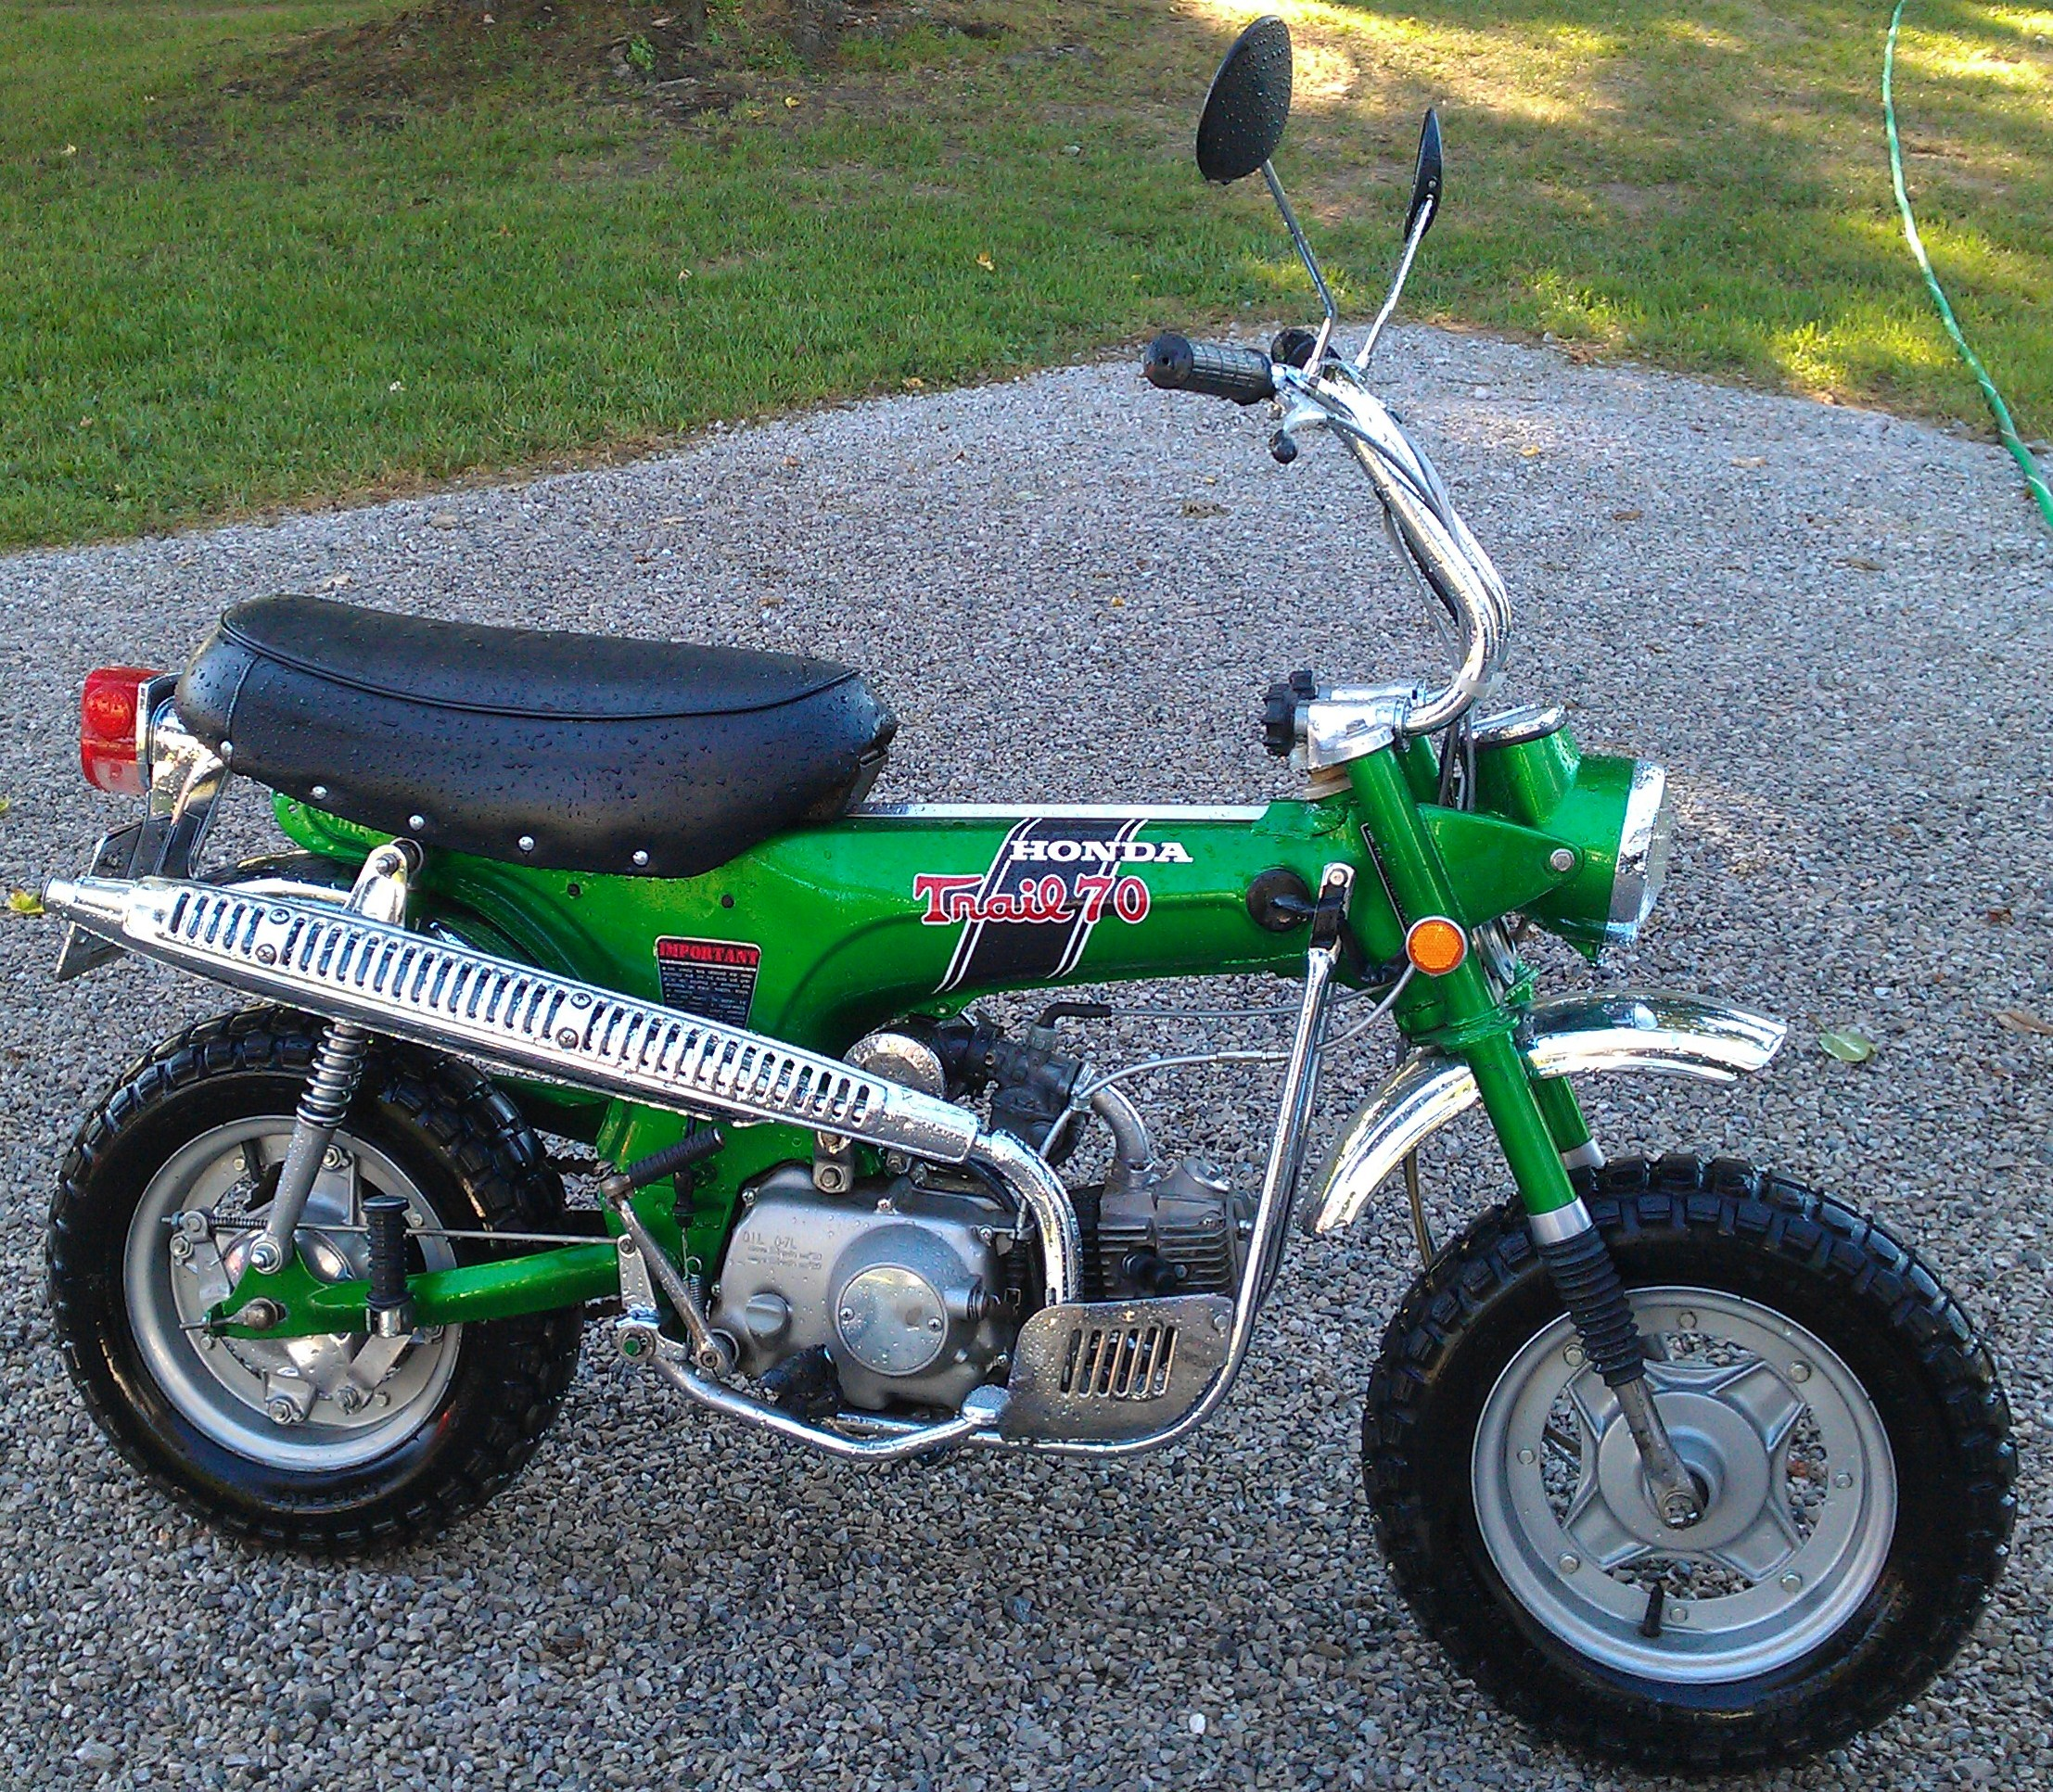 Honda Ct70 Trail 70 For Sale 1970 Brochures 1993 Ct Click Image Larger Version Name Imag9980 Views 89 Size